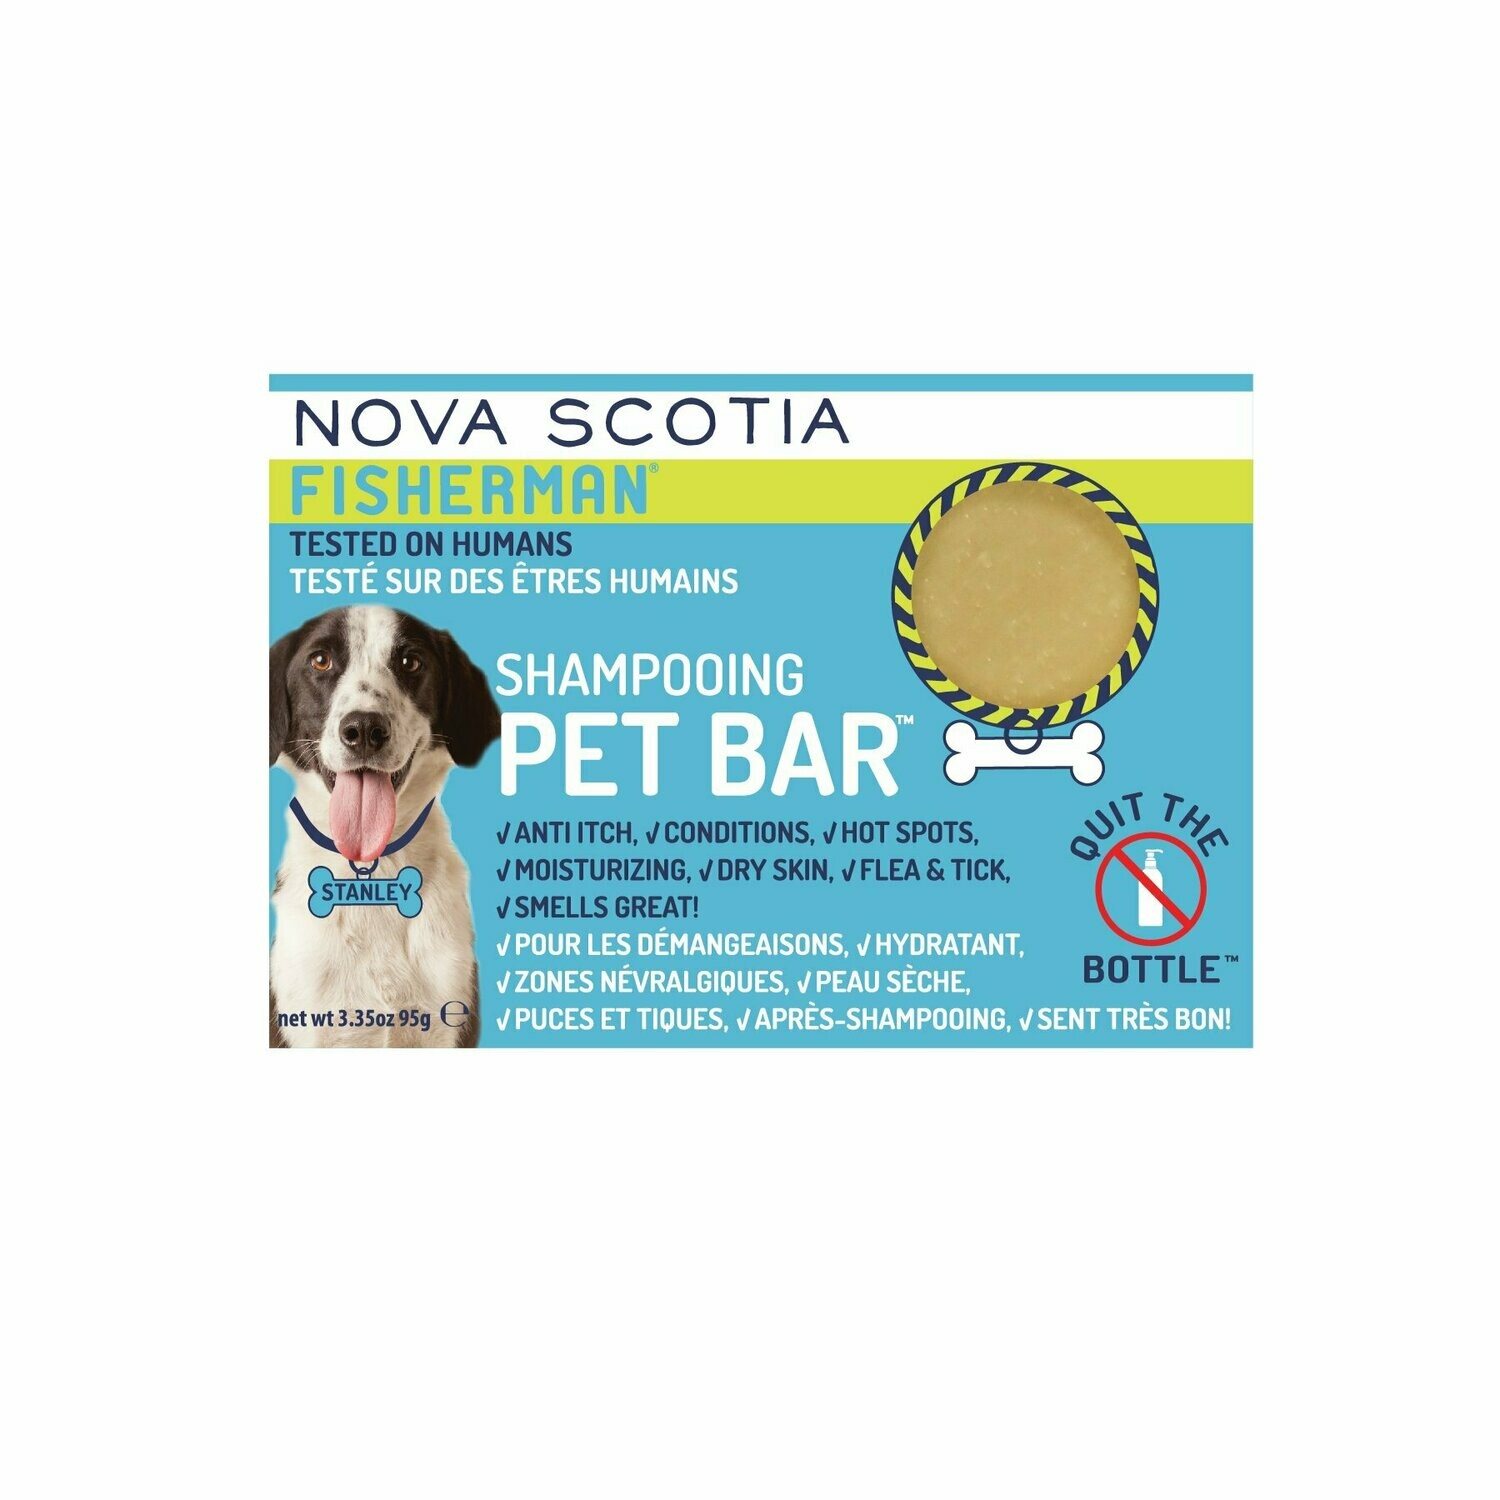 NS Fishermand Pet Bar